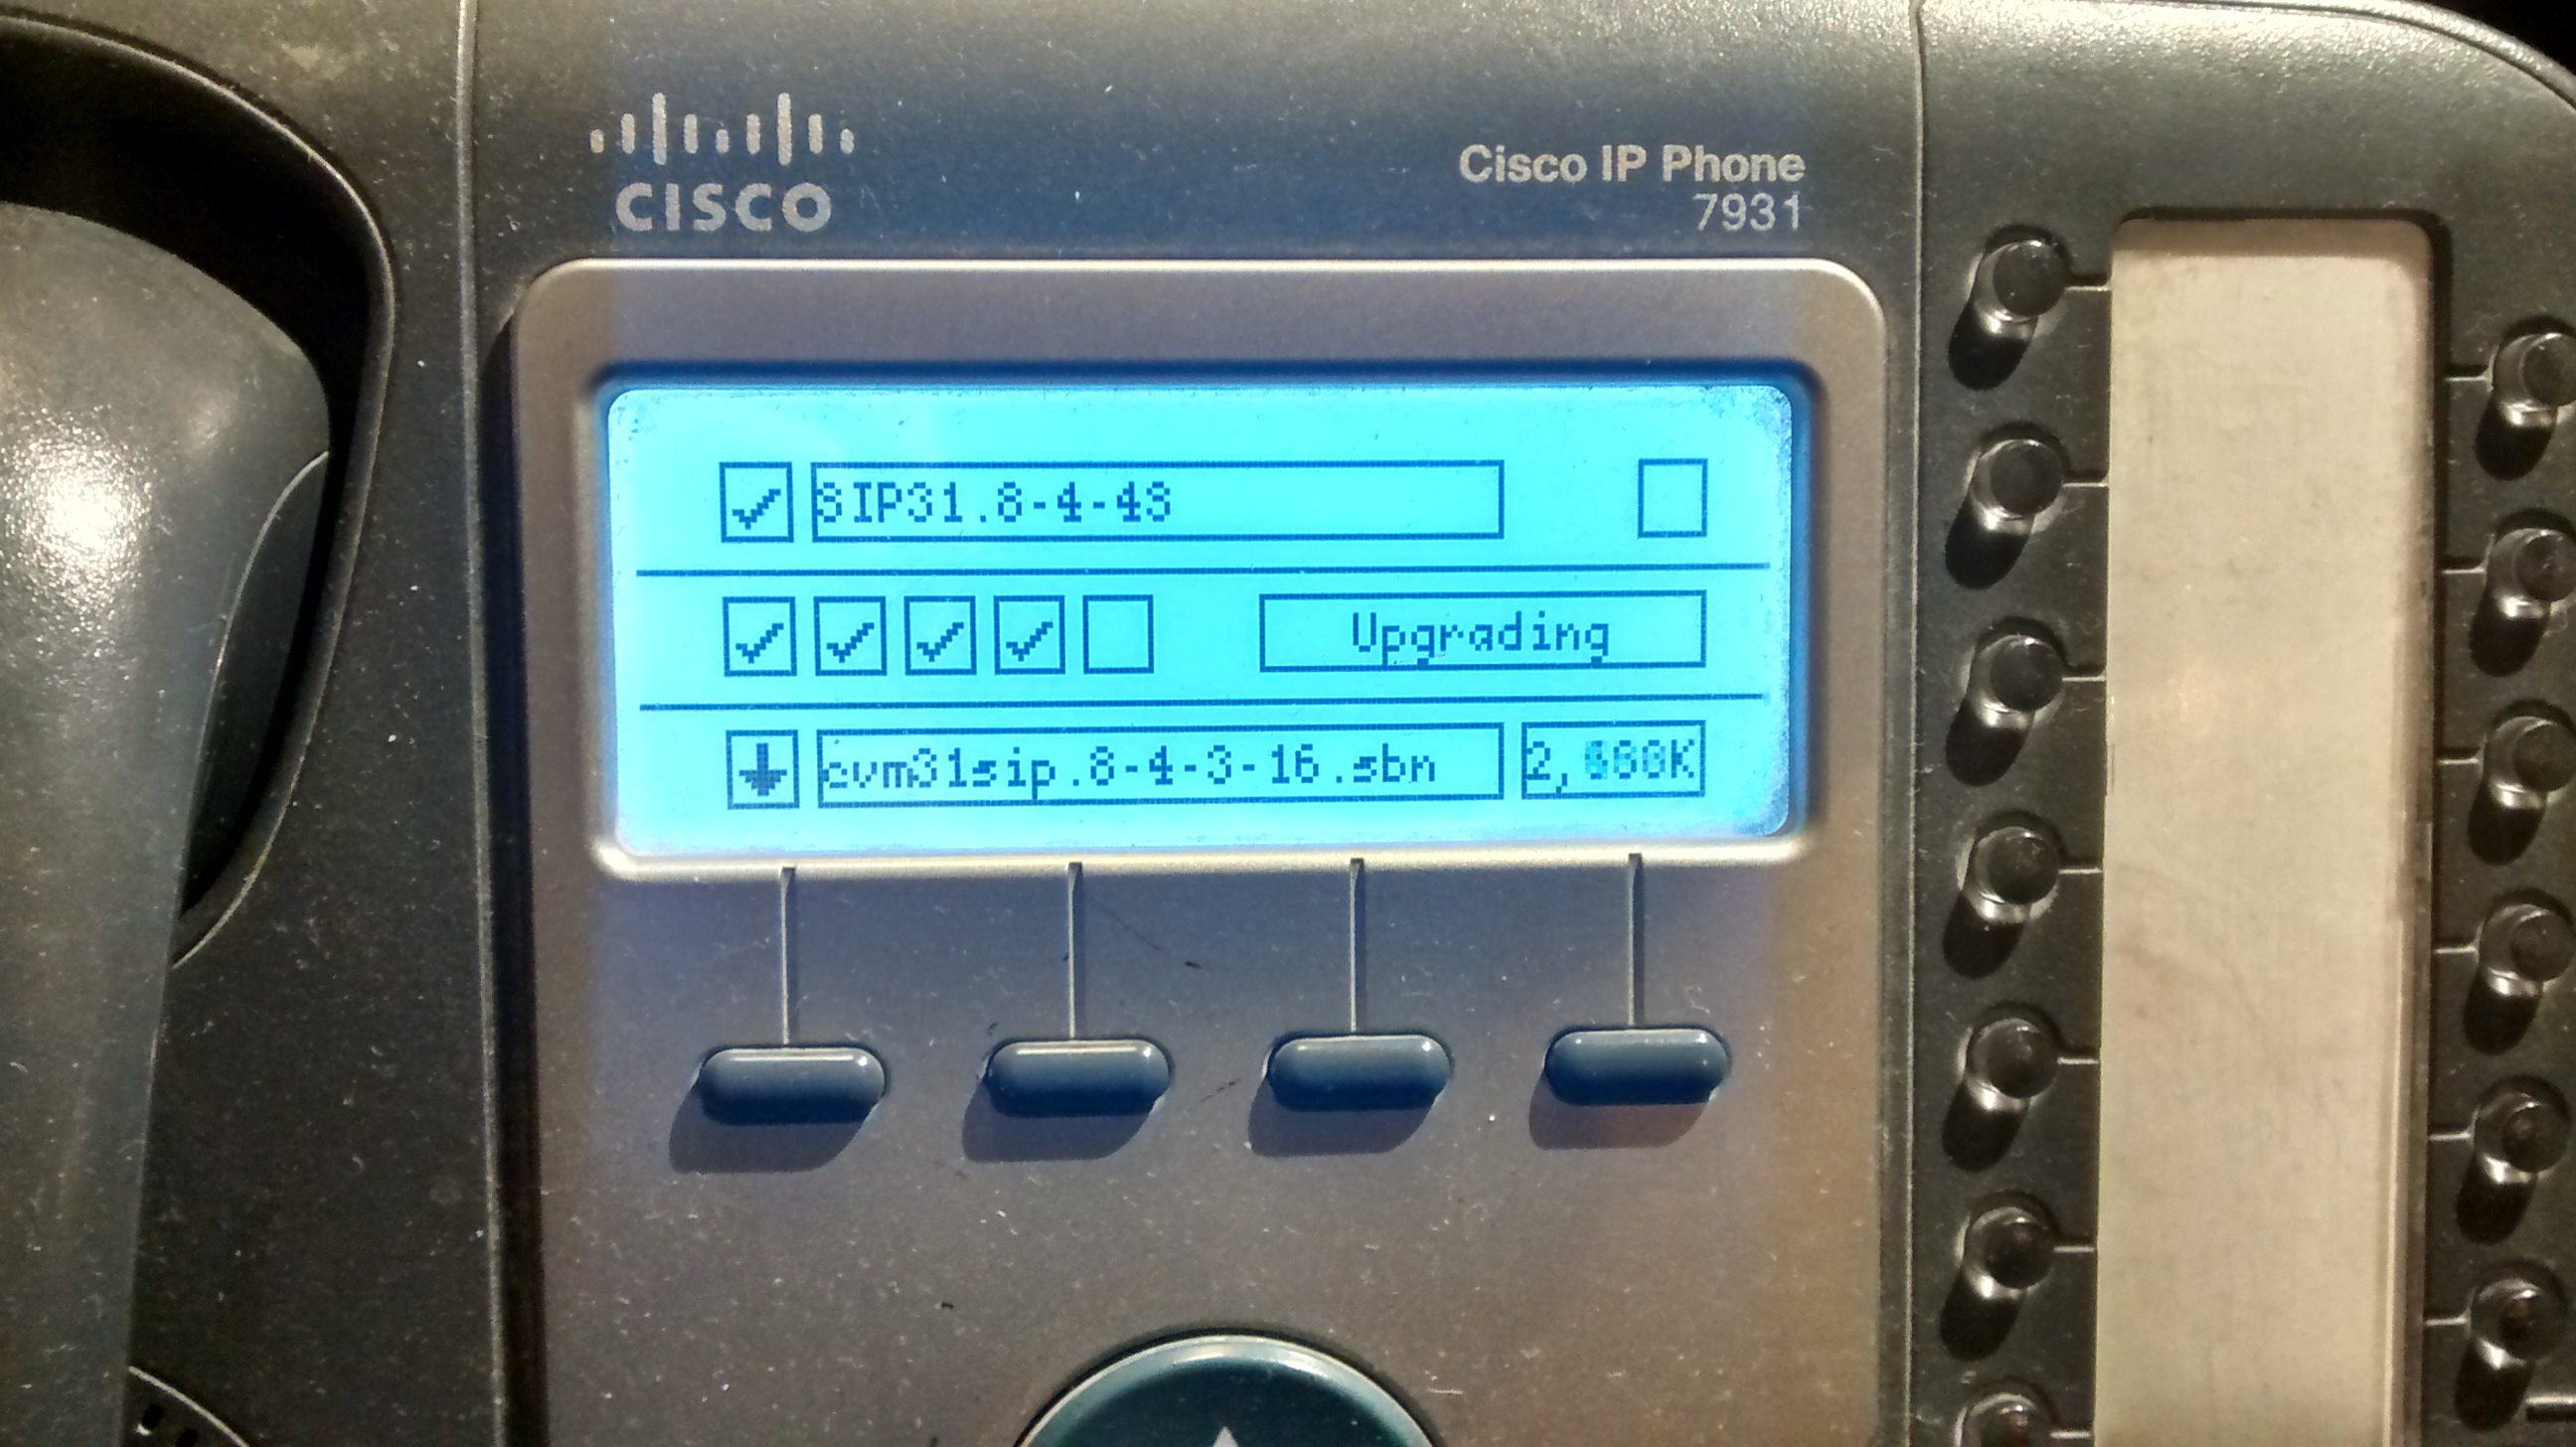 Converting Cisco 79x1 phones from SCCP to SIP | Smart Vision